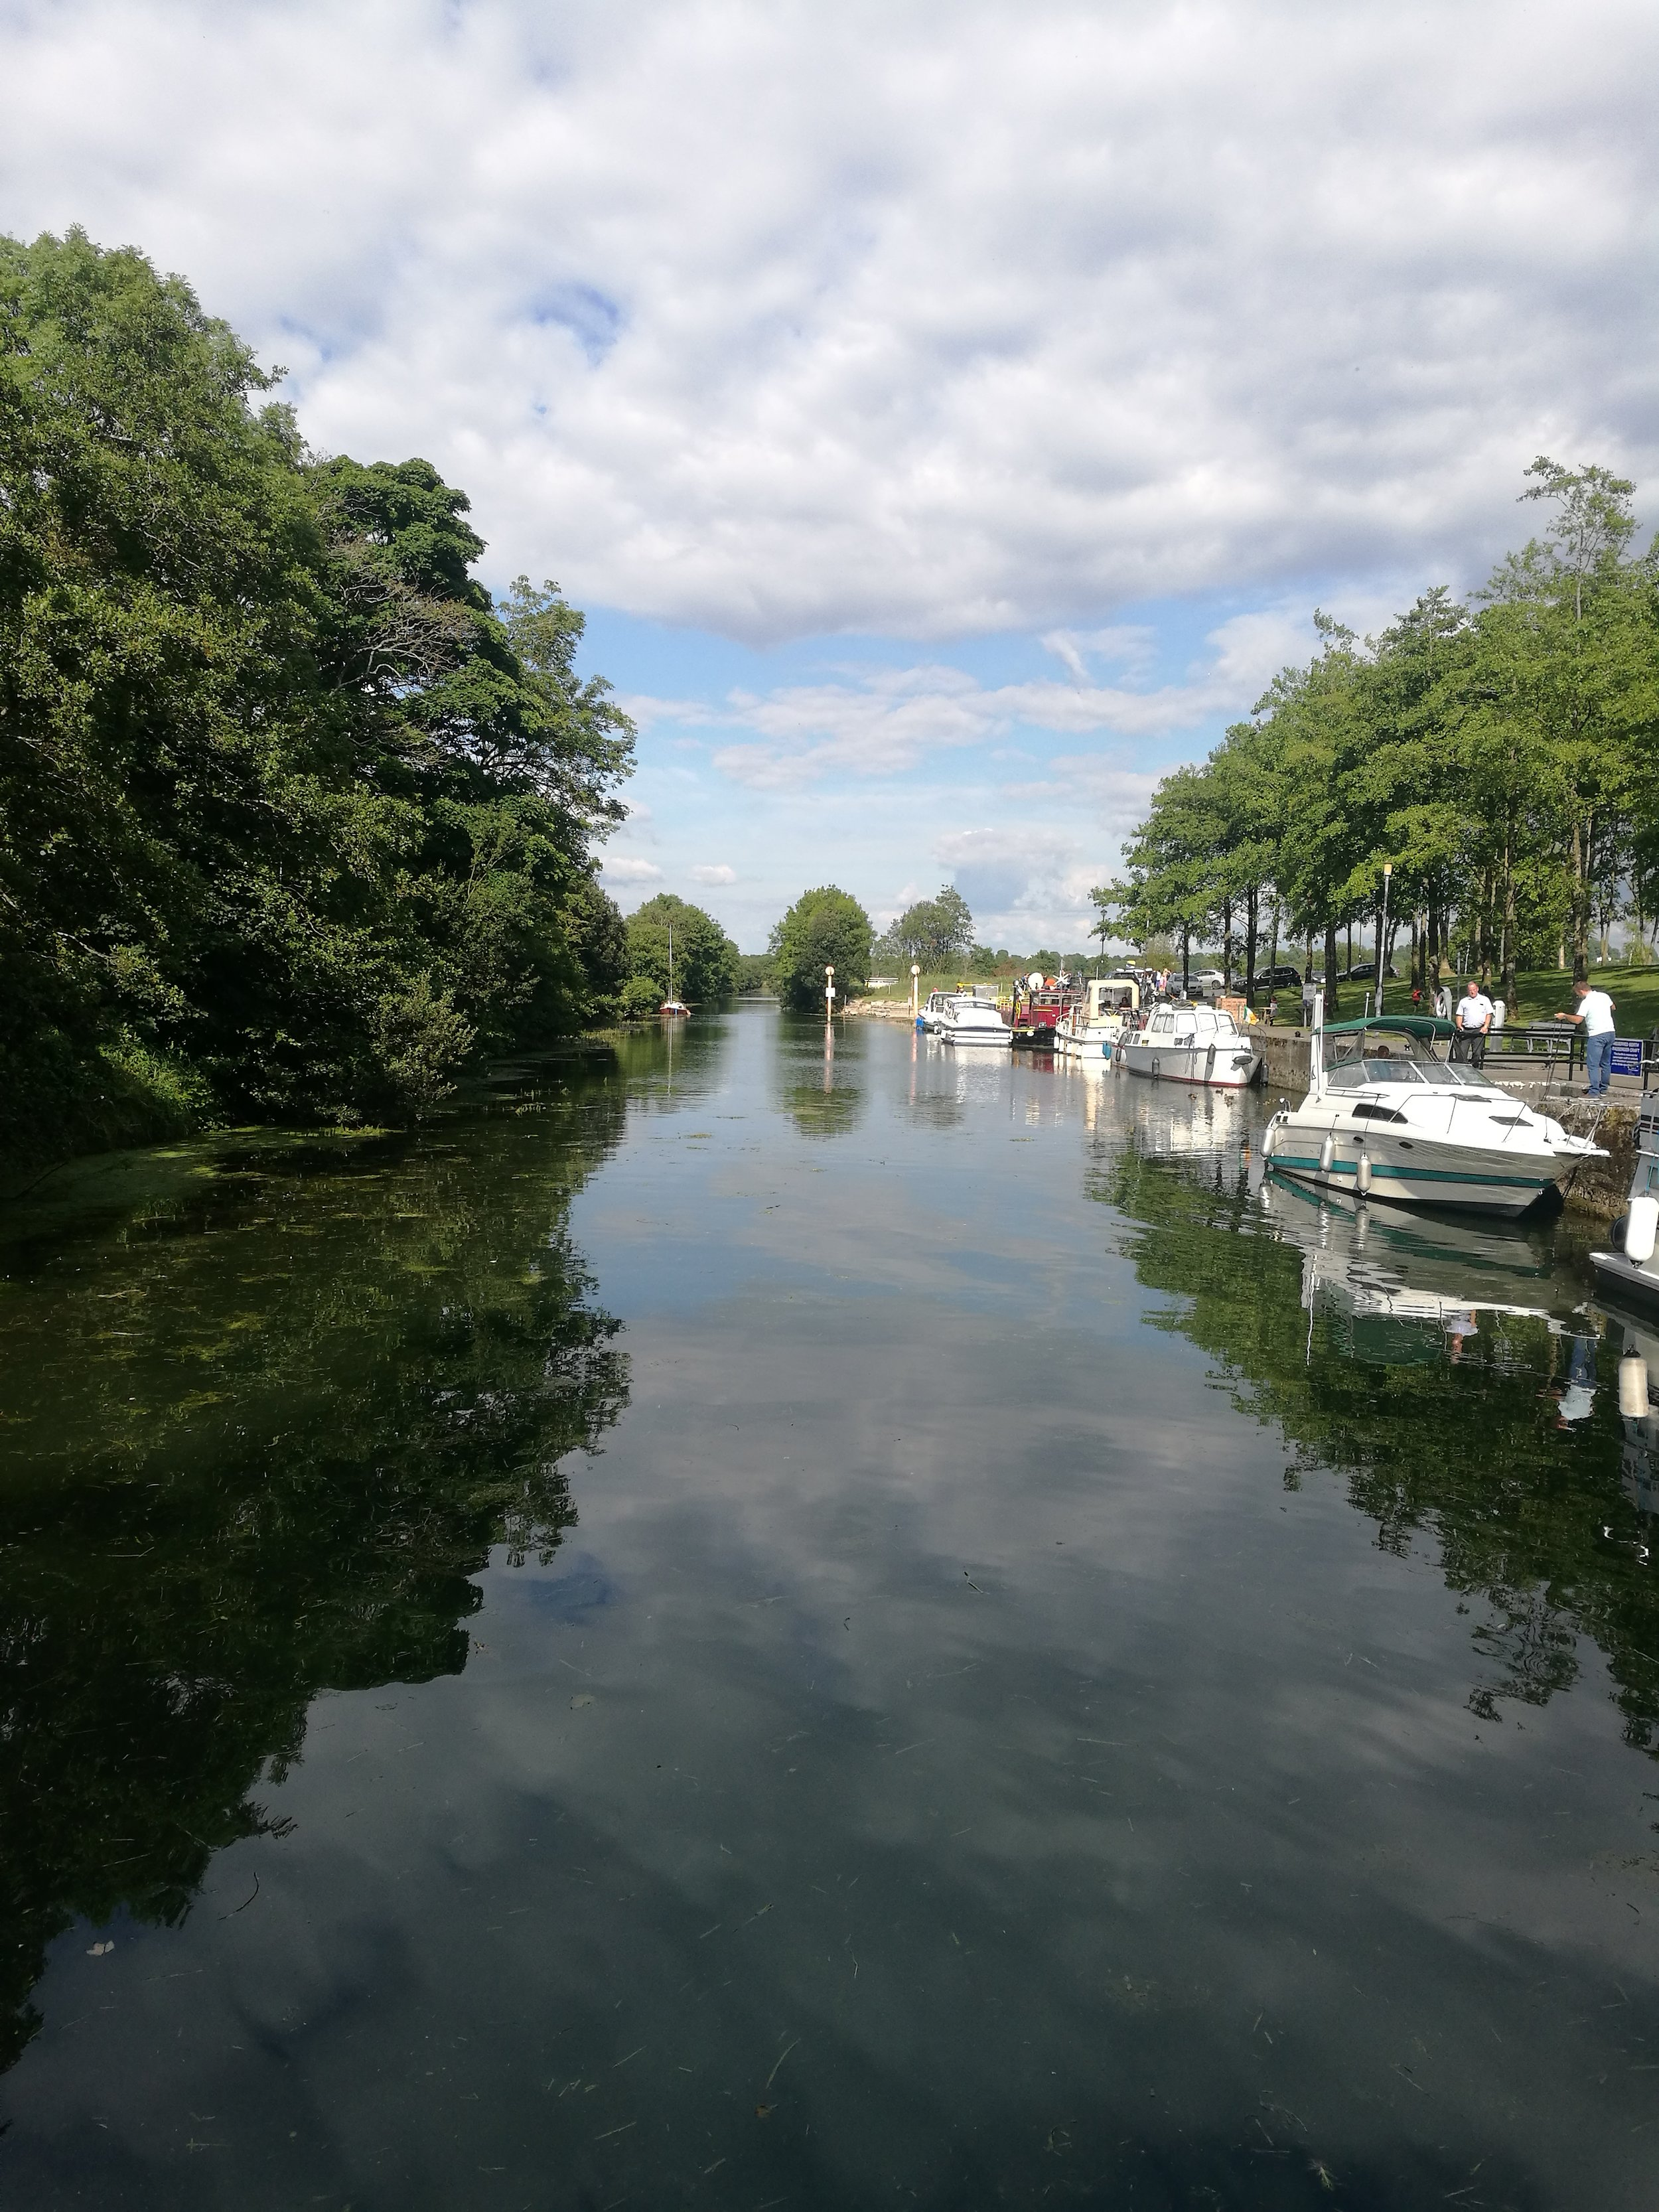 Leacarrow canal on Lough Ree, Ireland